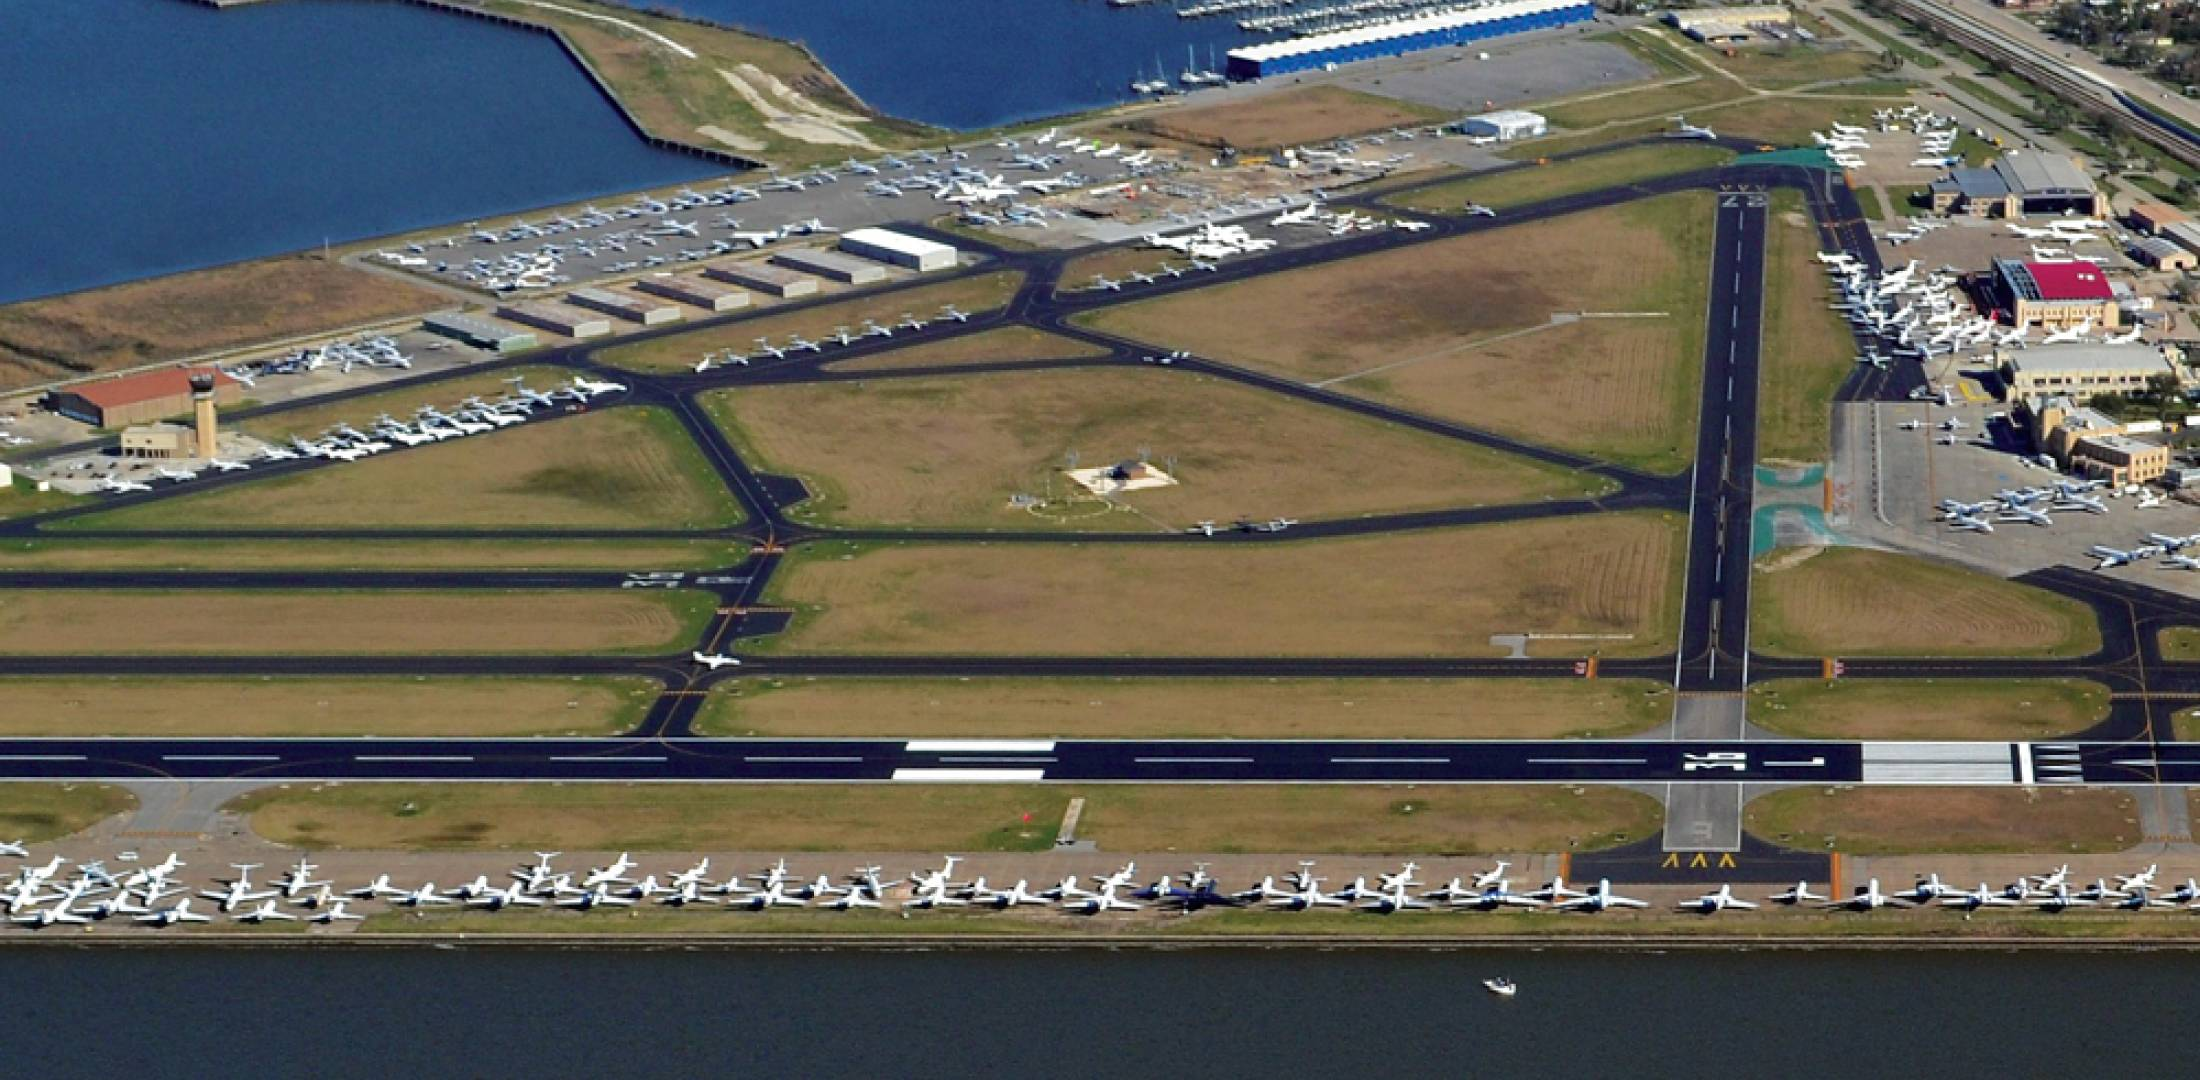 All told, nearly 1,000 business aircraft arrived at New Orleans airports–Lakefront and Louis Armstrong–for the Super Bowl. (Photo: JMT Aviation and Hawthorne Global Aviation Services; Aircraft provided by Gulf Coast Aviation)